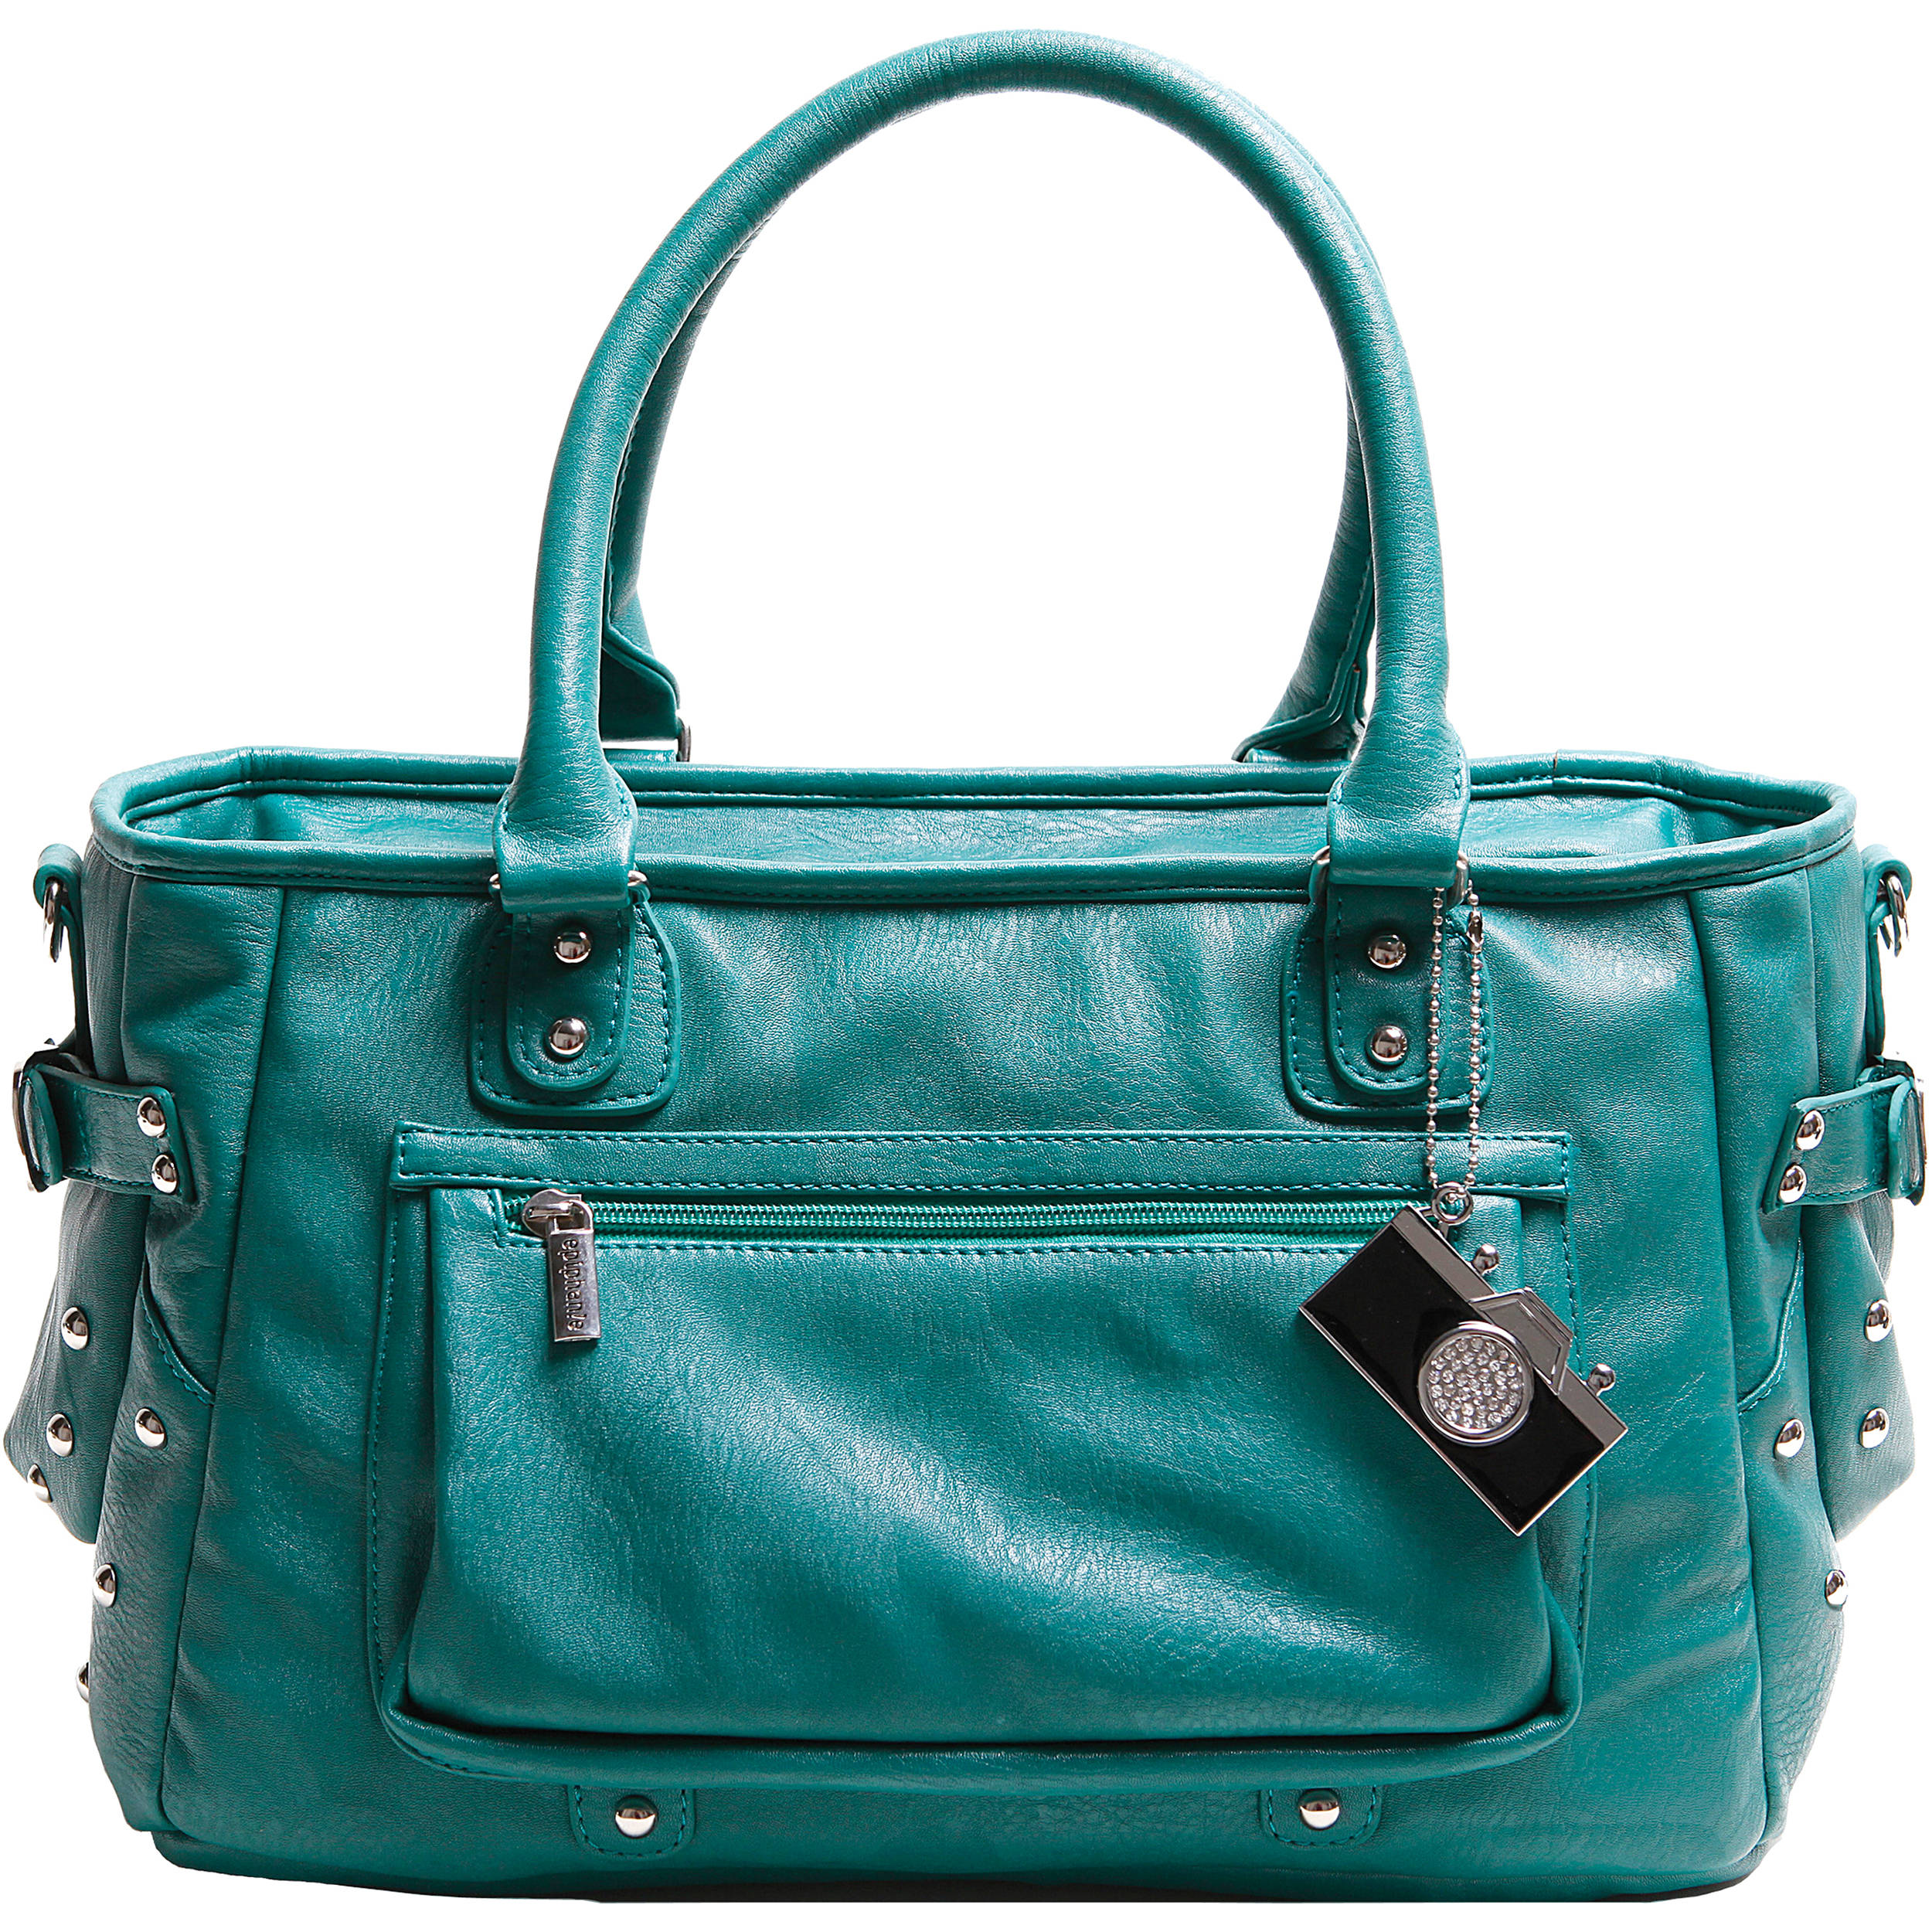 Epiphanie Belle Shoulder Bag Teal BEL007TEAL B&H Photo Video